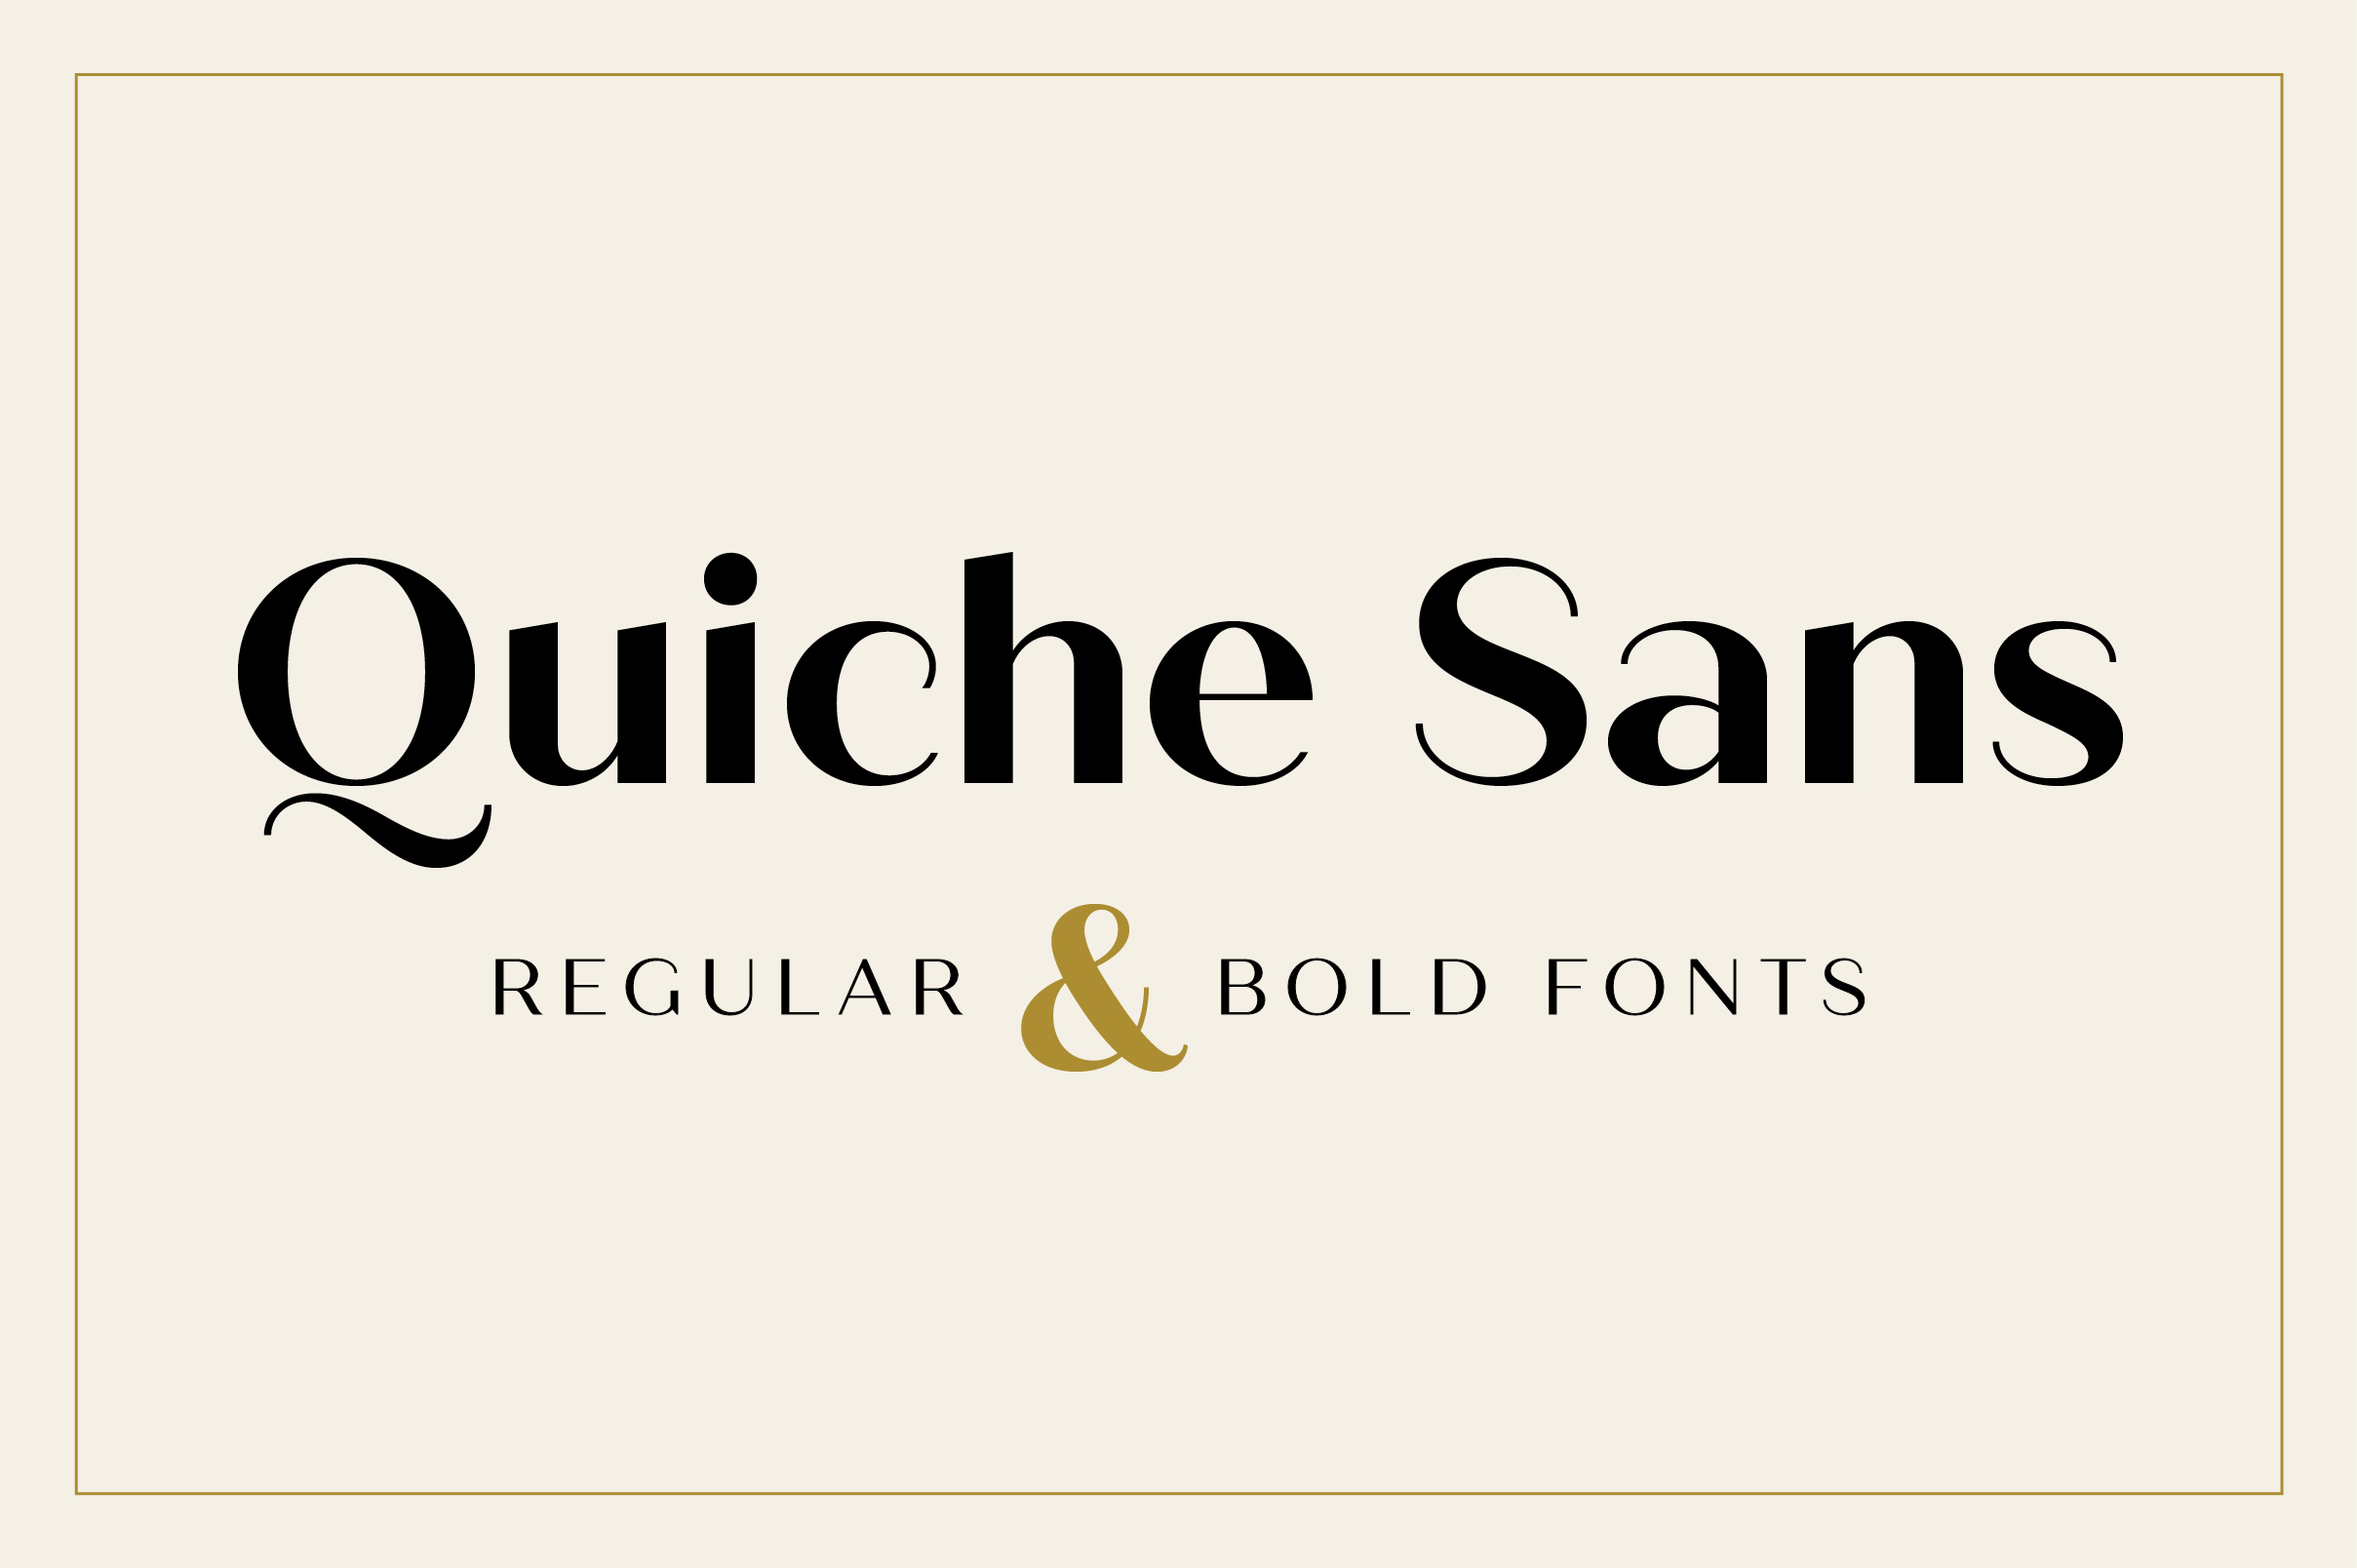 Quiche Sans Regular and Bold Fonts example image 1